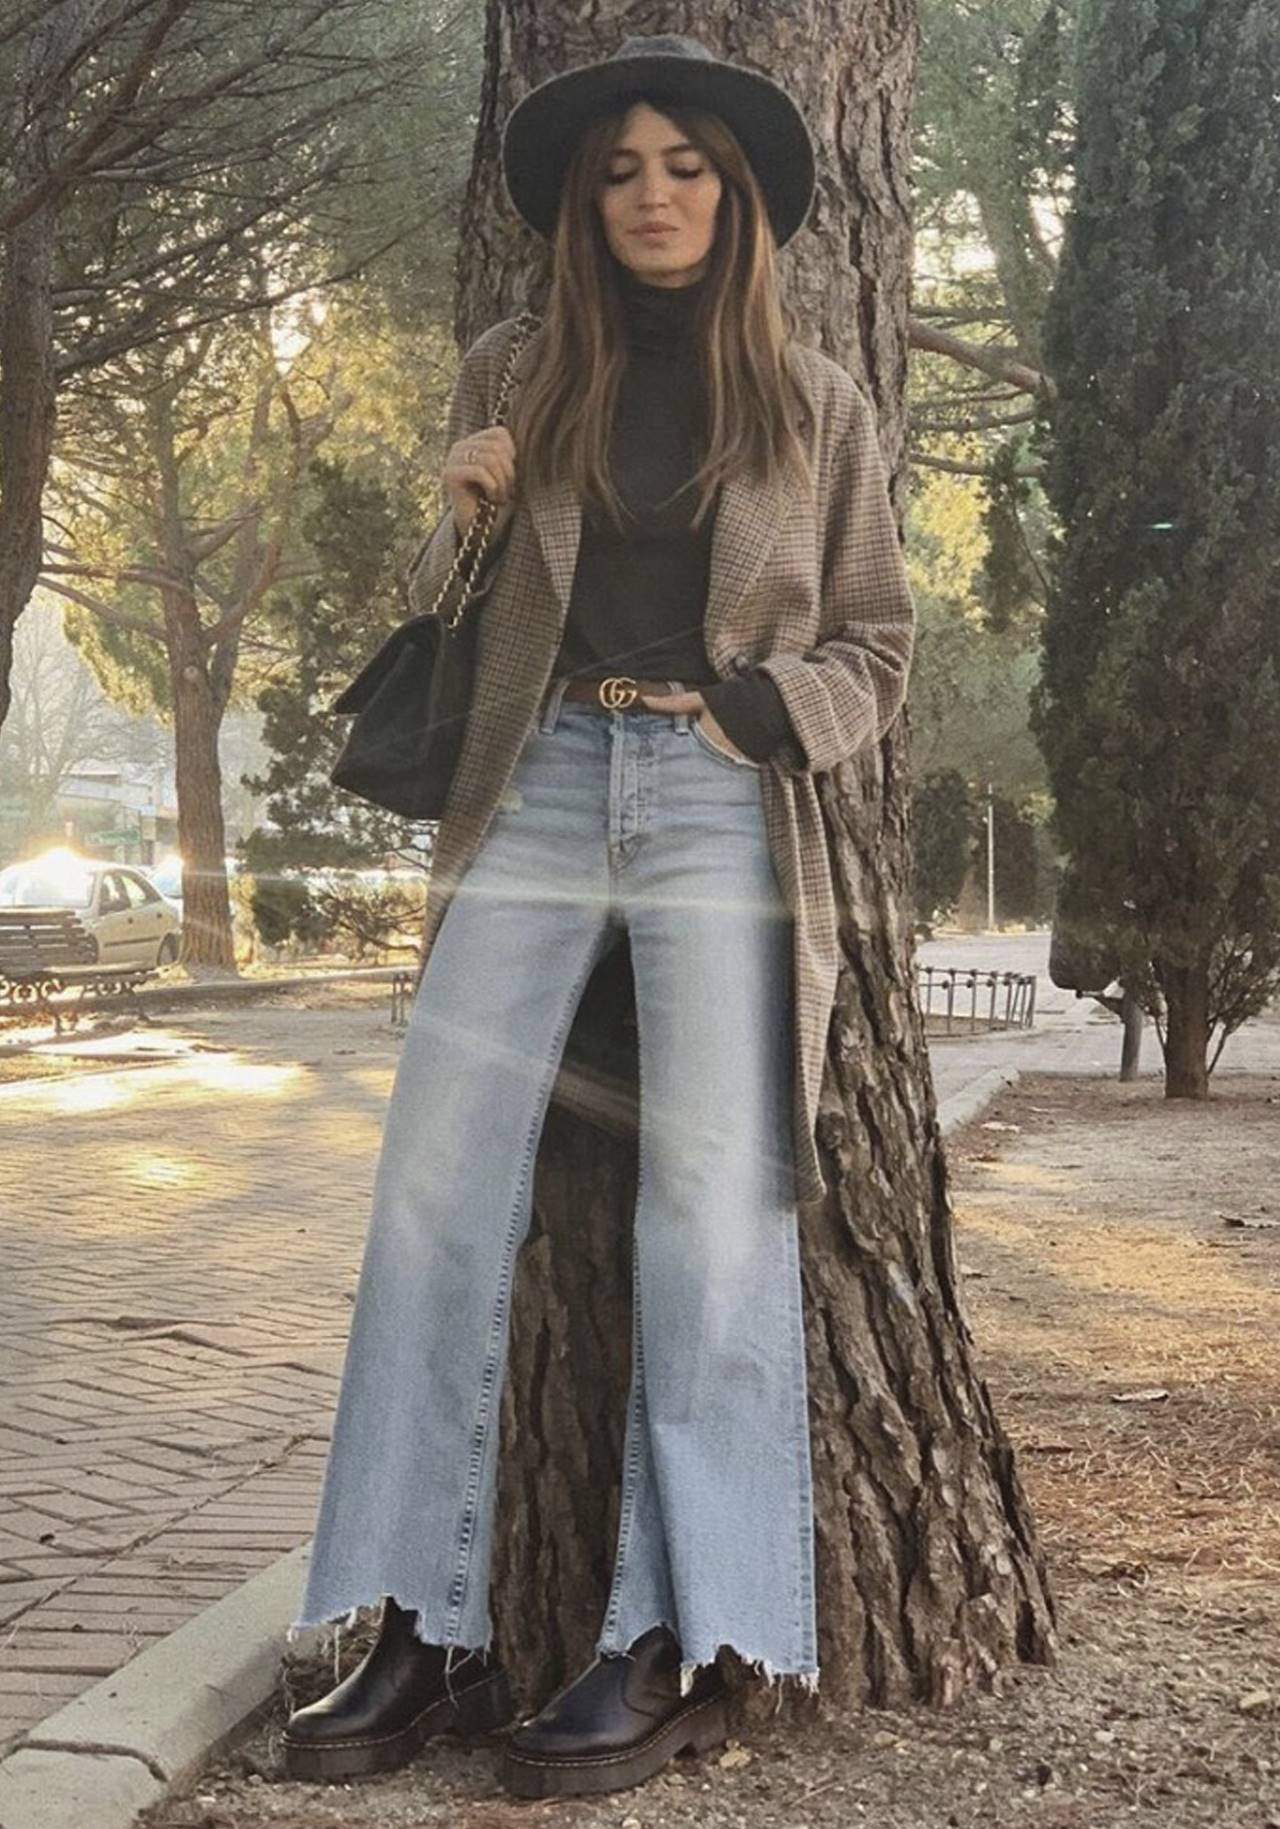 El look casual de Sara Carbonero